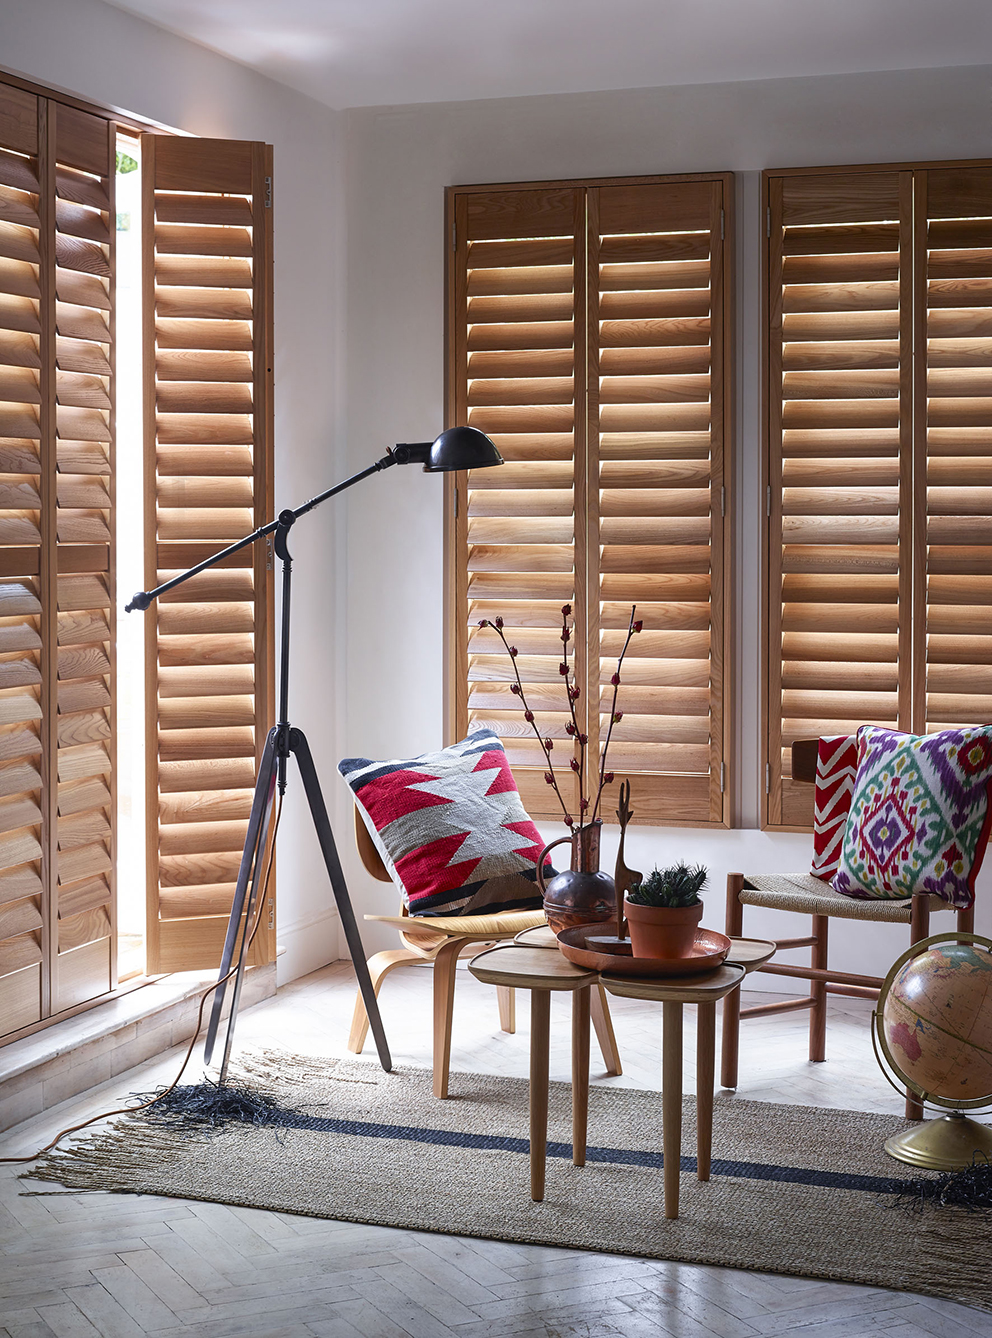 Shutterly Fabulous - French For Pineapple Blog - natural wood window and door shutters in neutral sitting area with parquet floor